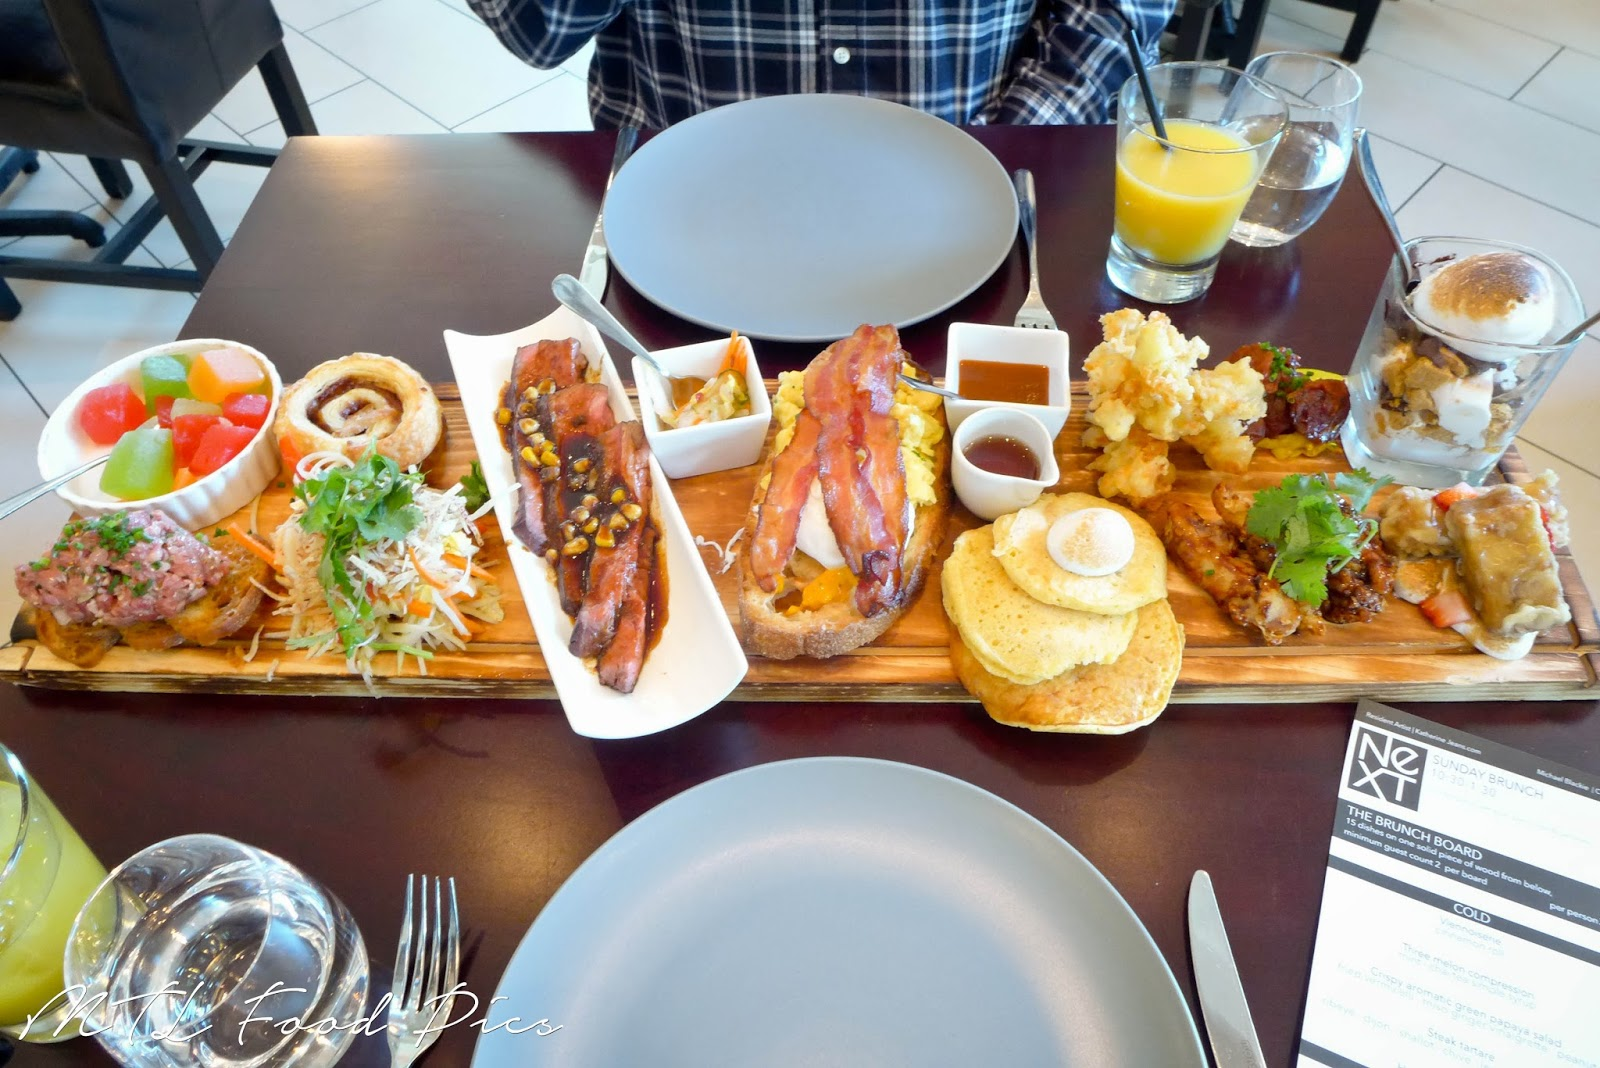 NEXT Restaurant - Brunch board Ottawa Stittsville